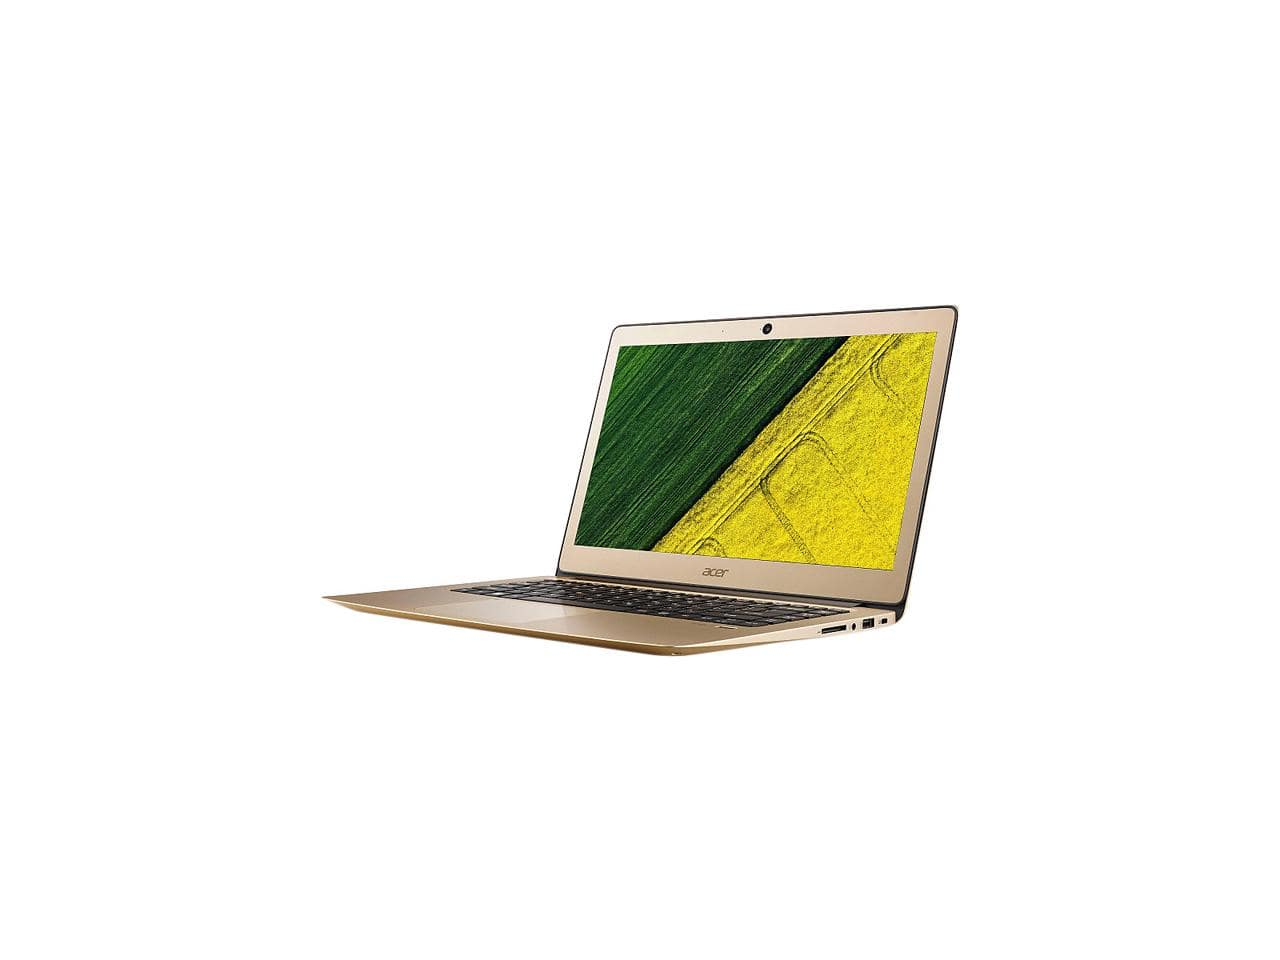 "$444.99 Refurbished Acer Swift 3 14.0"" Laptop: i5-6200U, 8GB DDR4, 256 SSD"